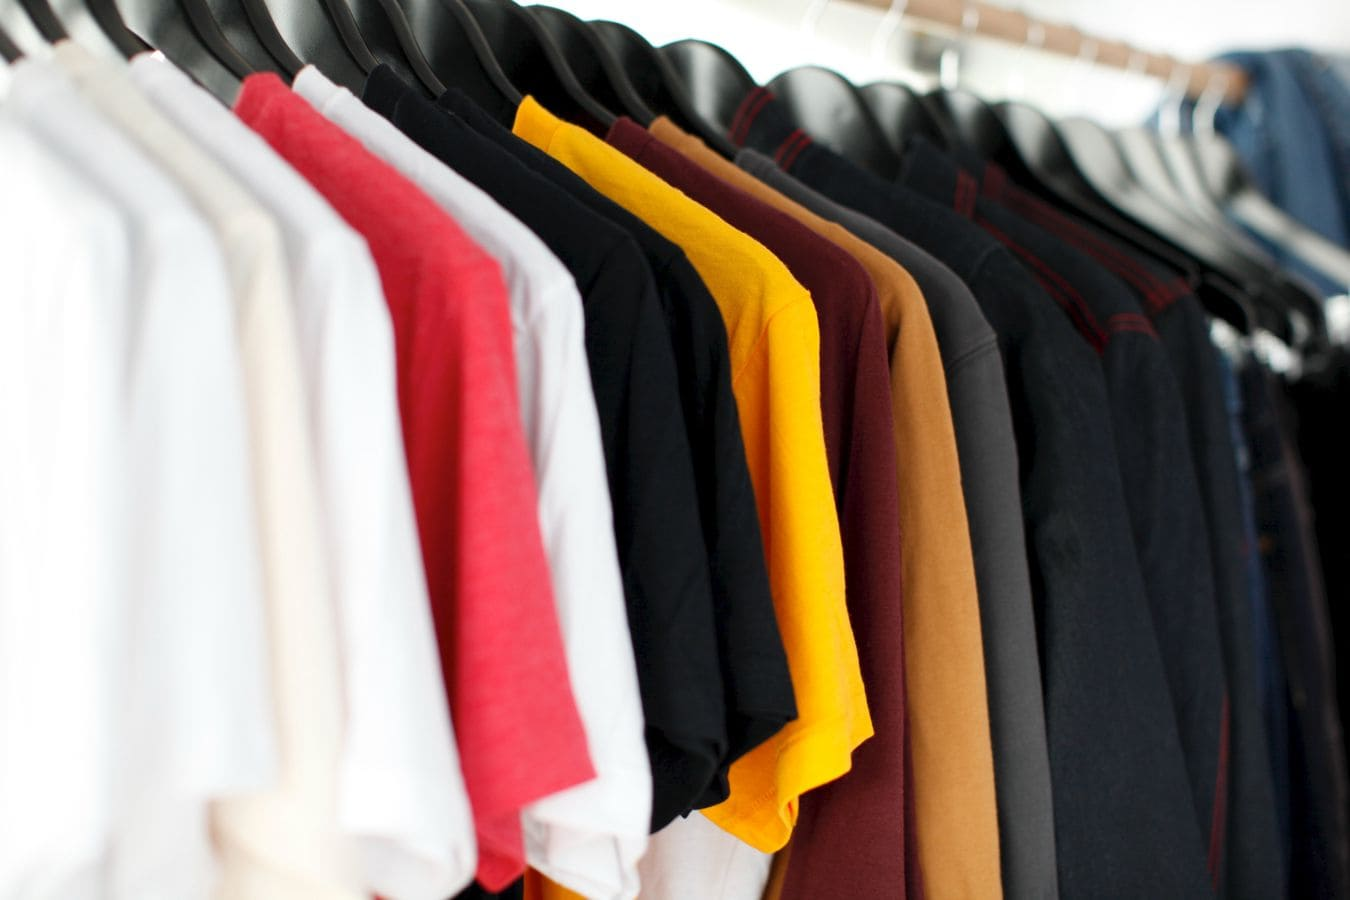 Start your own clothing line without costs